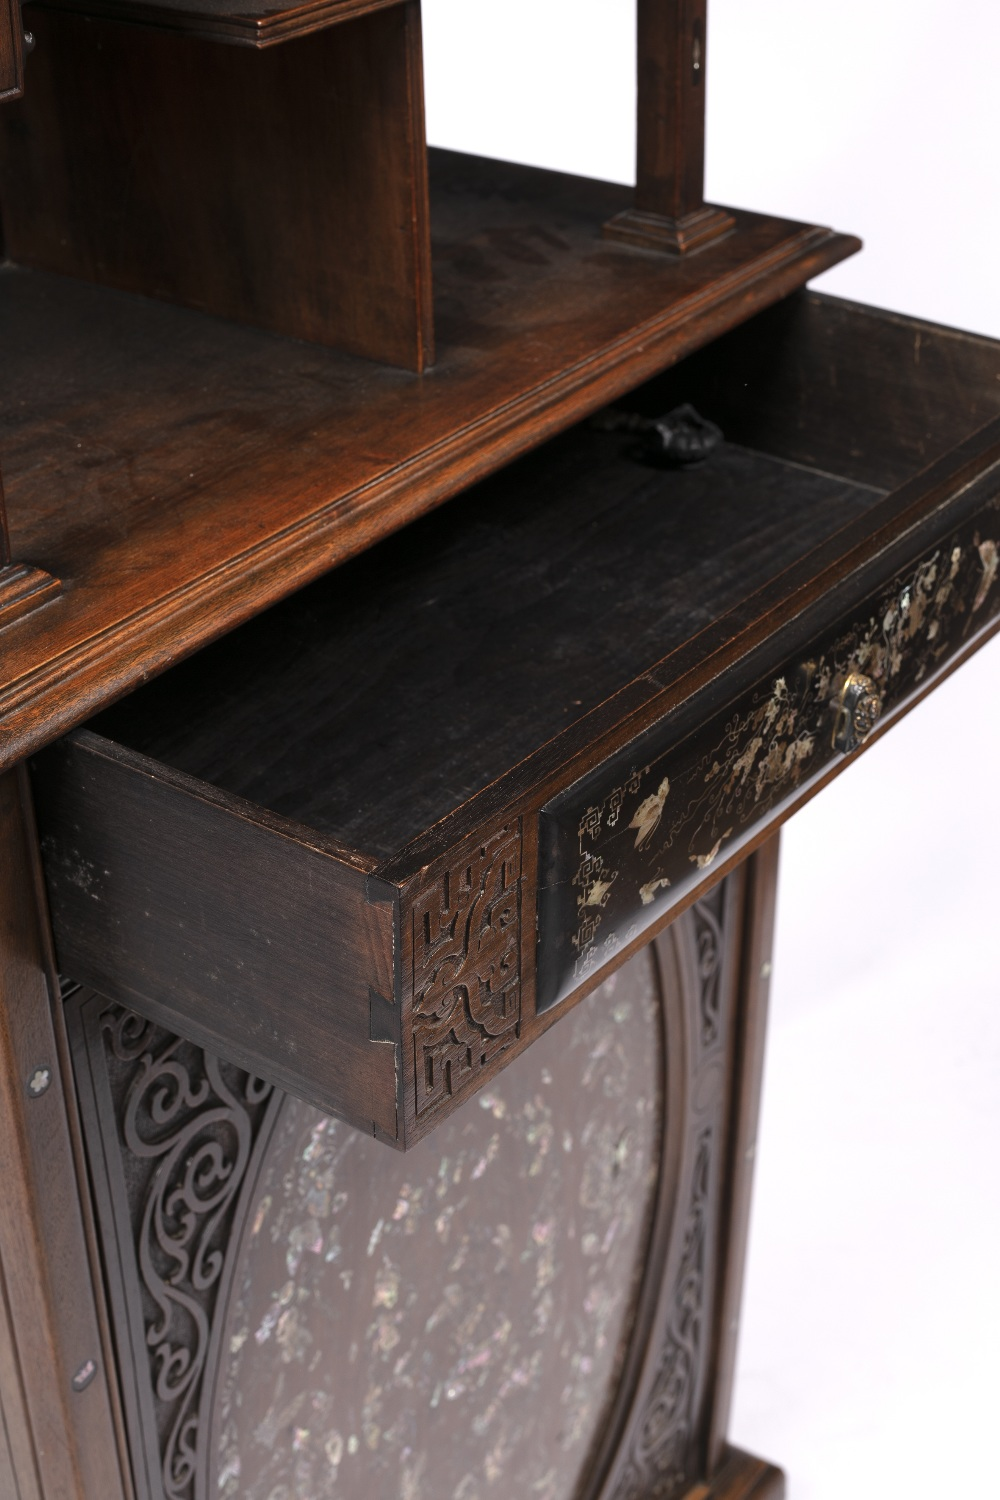 Inlaid hardwood cabinet Chinese, 19th Century with raised back inlaid with mother of pearl and - Image 3 of 5